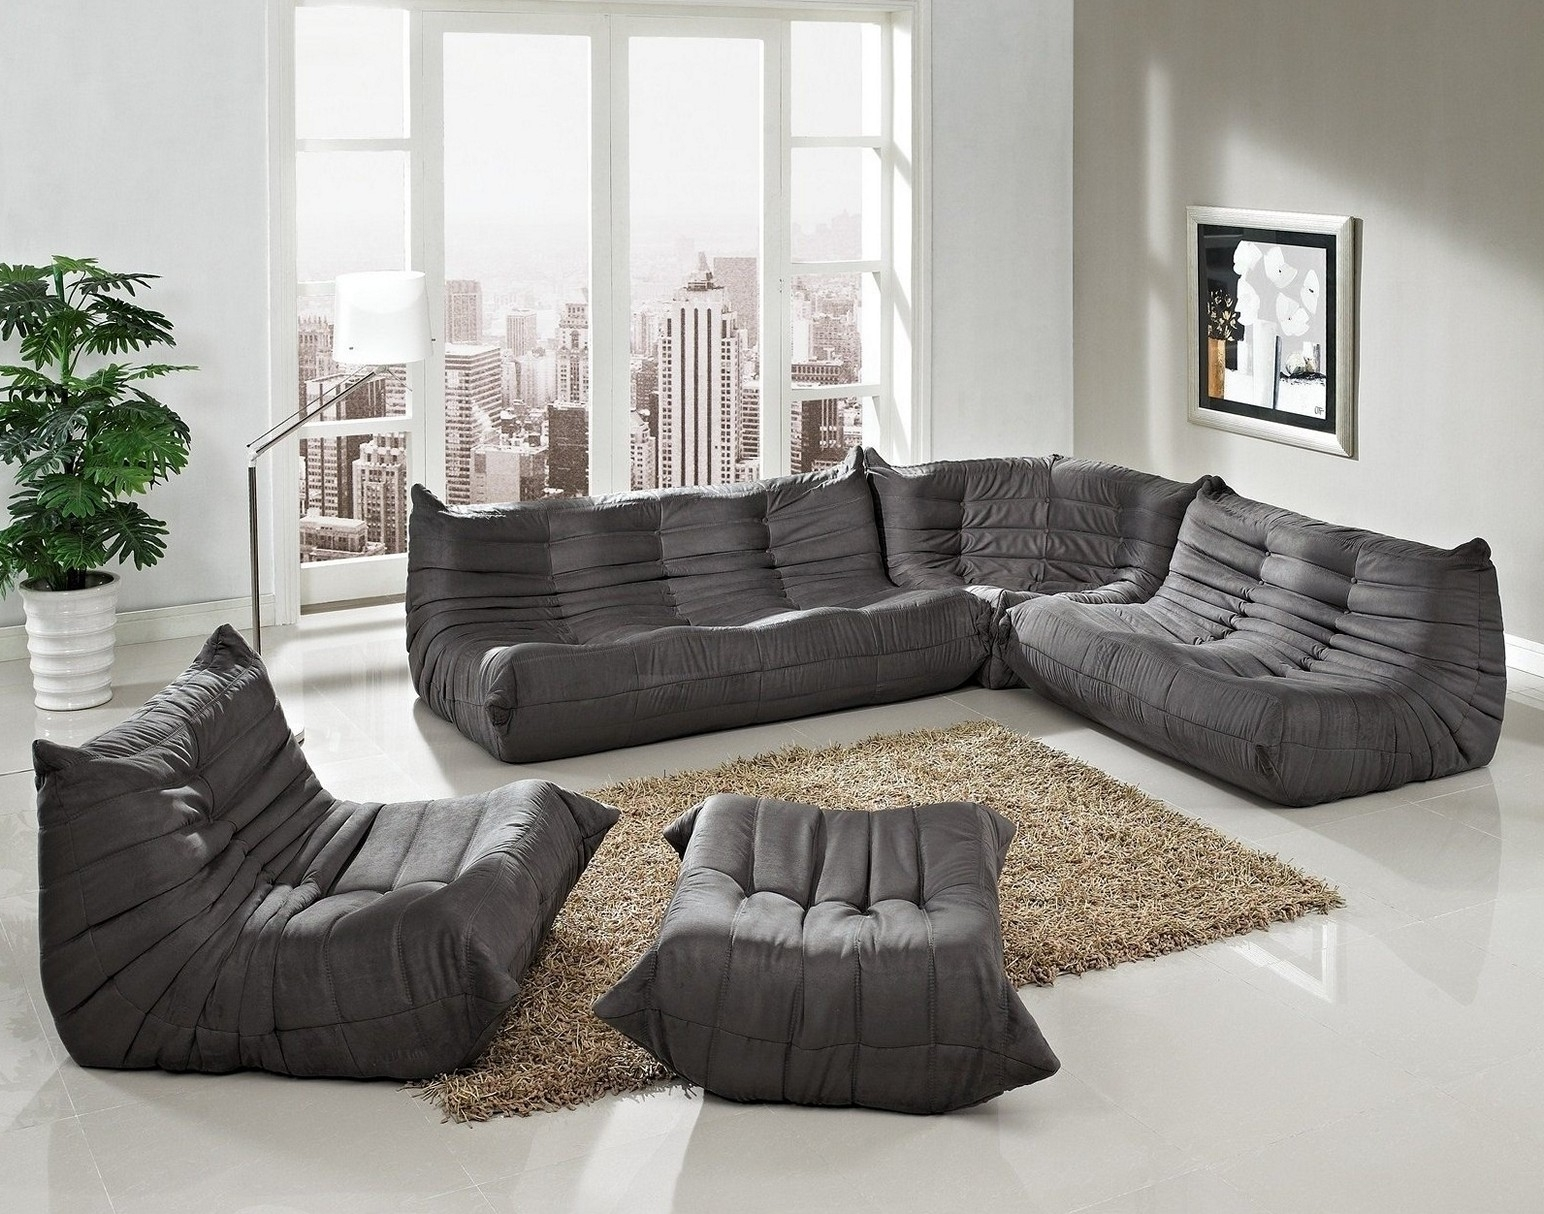 Comfortable Floor Couch For Sweet Home Inside Comfortable Floor Seating (Image 2 of 15)